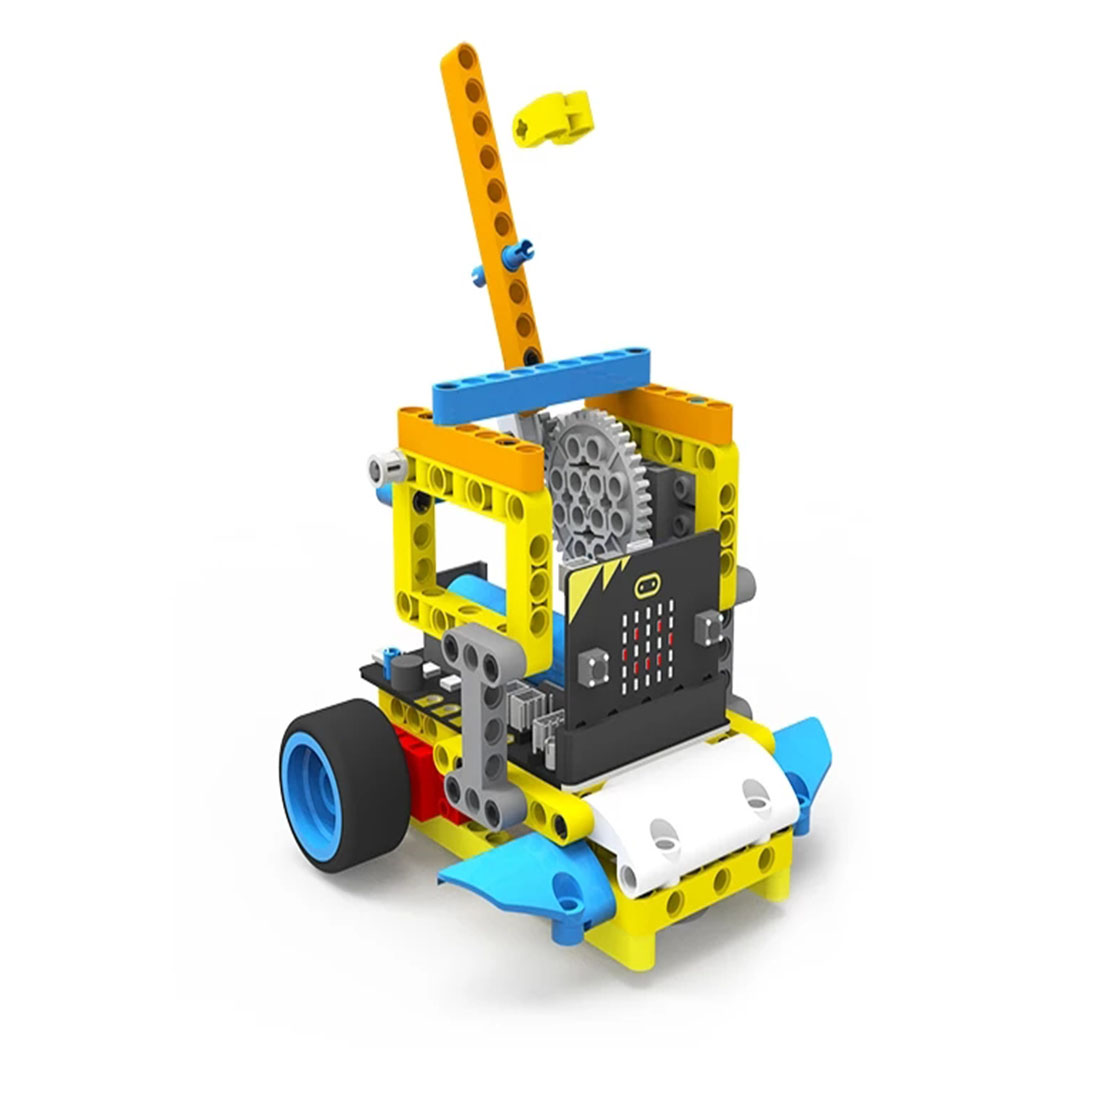 Program Intelligent Robot Building Block Car Kit Various Shapes Steam Programming Education Car For Micro:bit(Micro:bit Board)